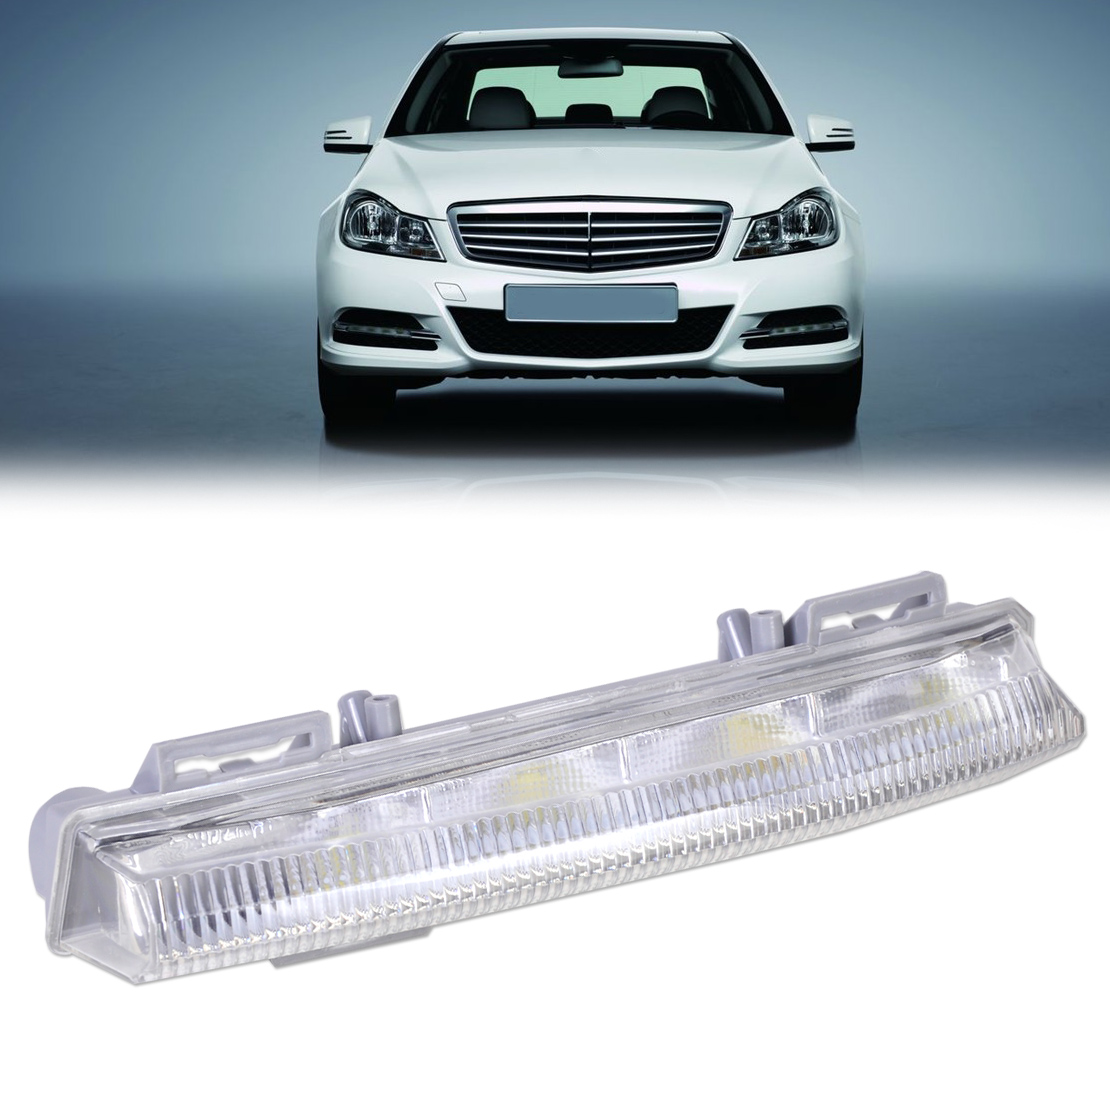 Led Drl Daytime Running Lights Fog Lamp Left For Mercedes Benz W204 C280 4matic 2007 Side Markers Repair Wire Harness Light 2049068900 Fit W212 R172